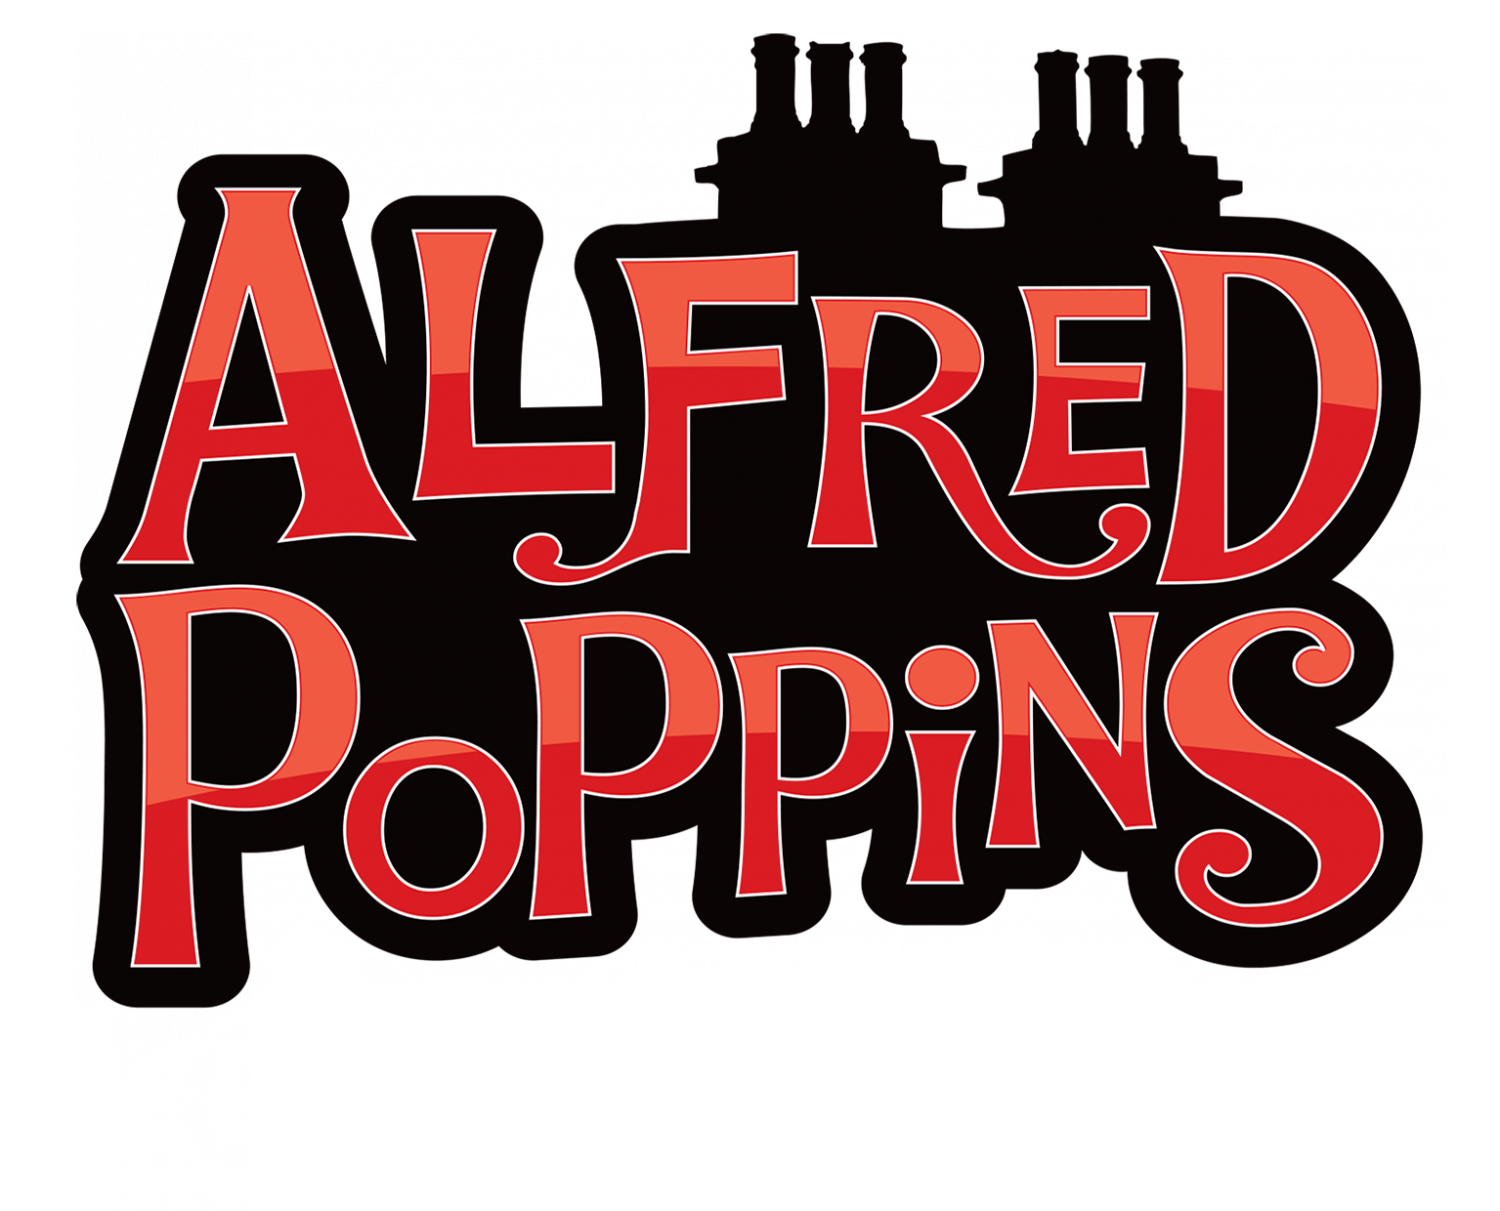 Alfred Poppins | Chimney Sweep Stamford & Peterborough